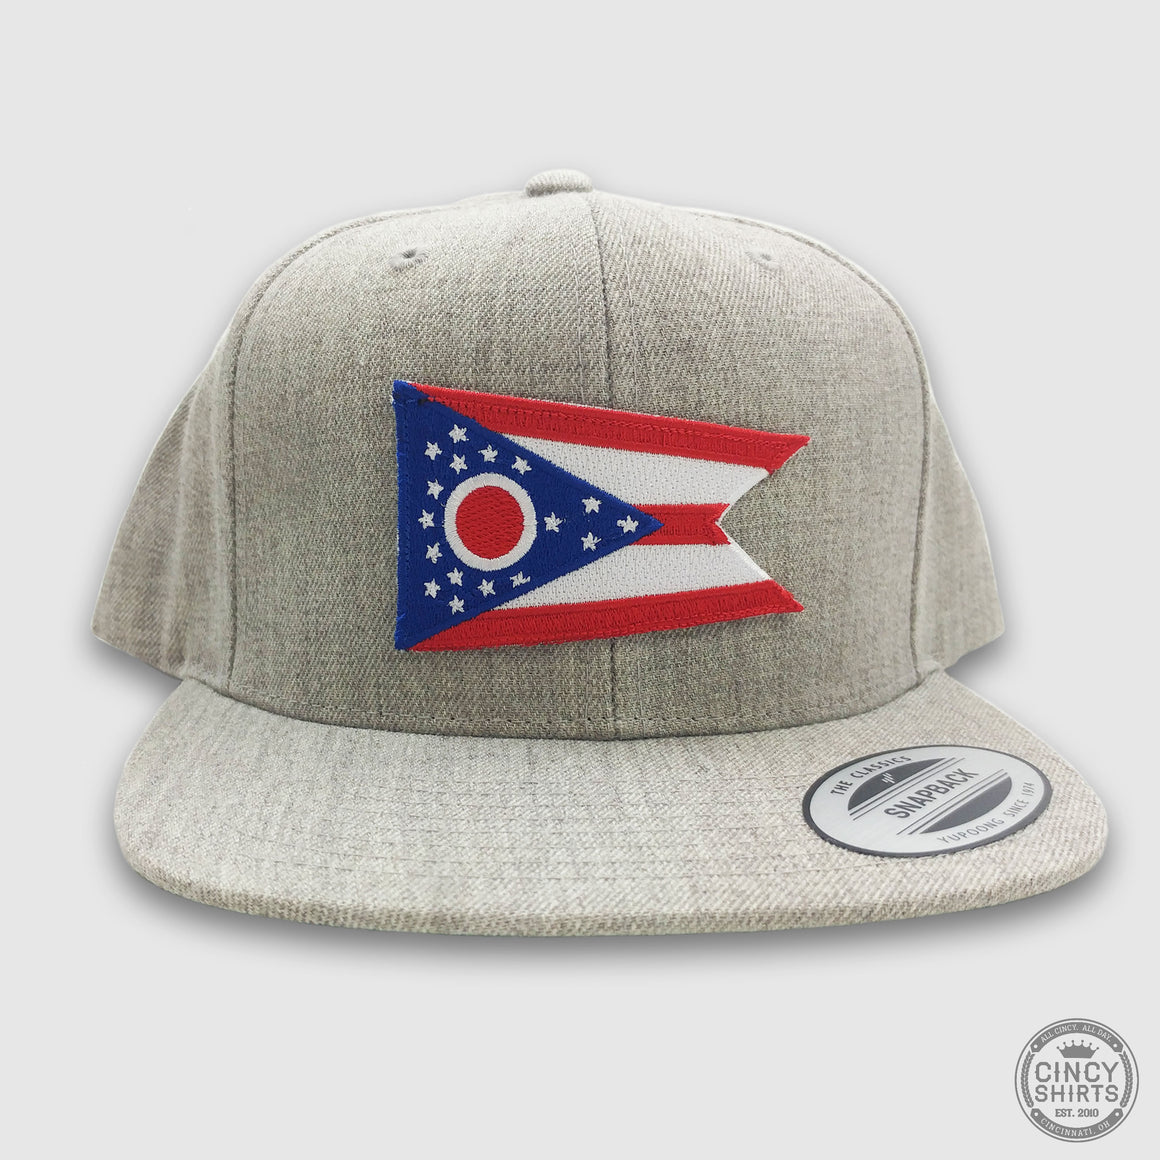 Ohio Flag Snapback Hat - Cincy Shirts